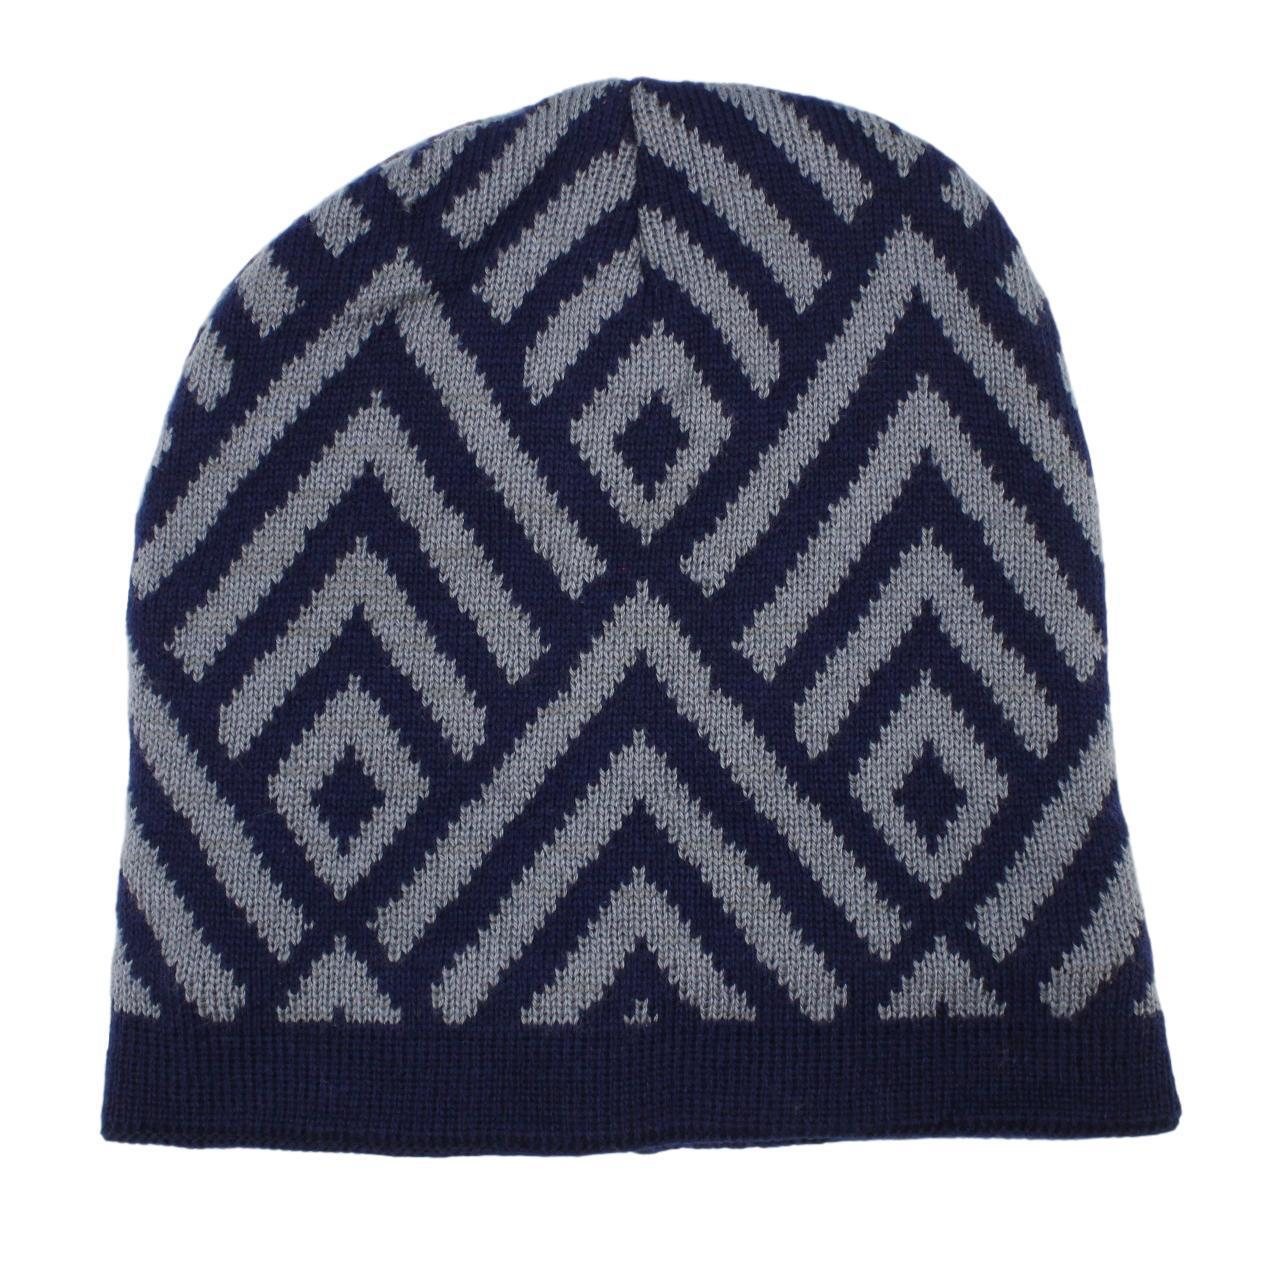 Atlantis Extreme Reversible Jersey Slouch Beanie